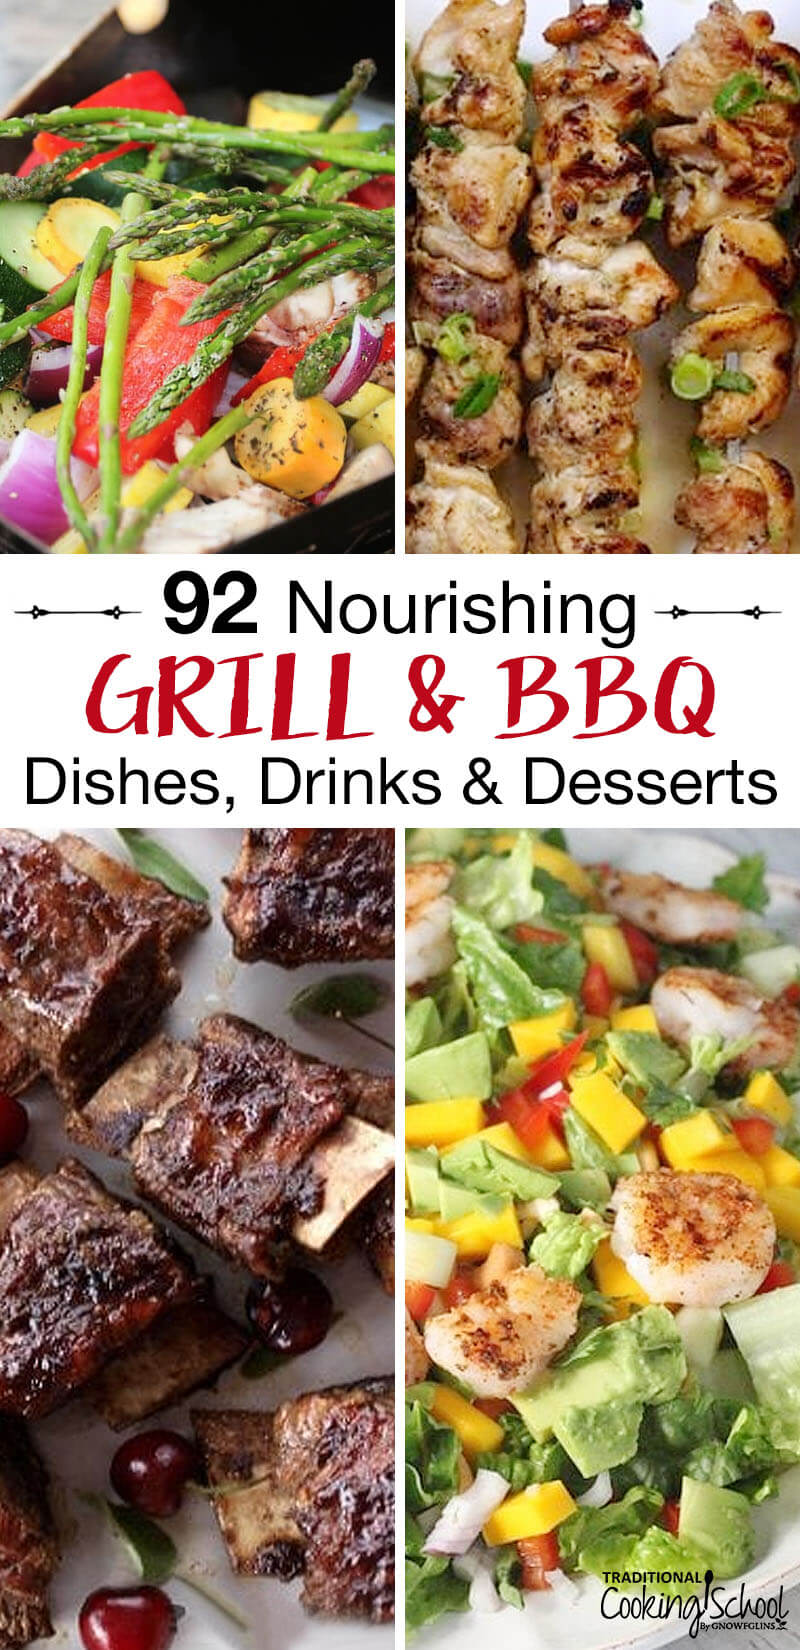 Its finally time to move the cooking outside, play yard games, and enjoy the heat! We've gotcha covered with these nourishing grill and barbecue dishes, drinks, and desserts! Traditional Cooking School